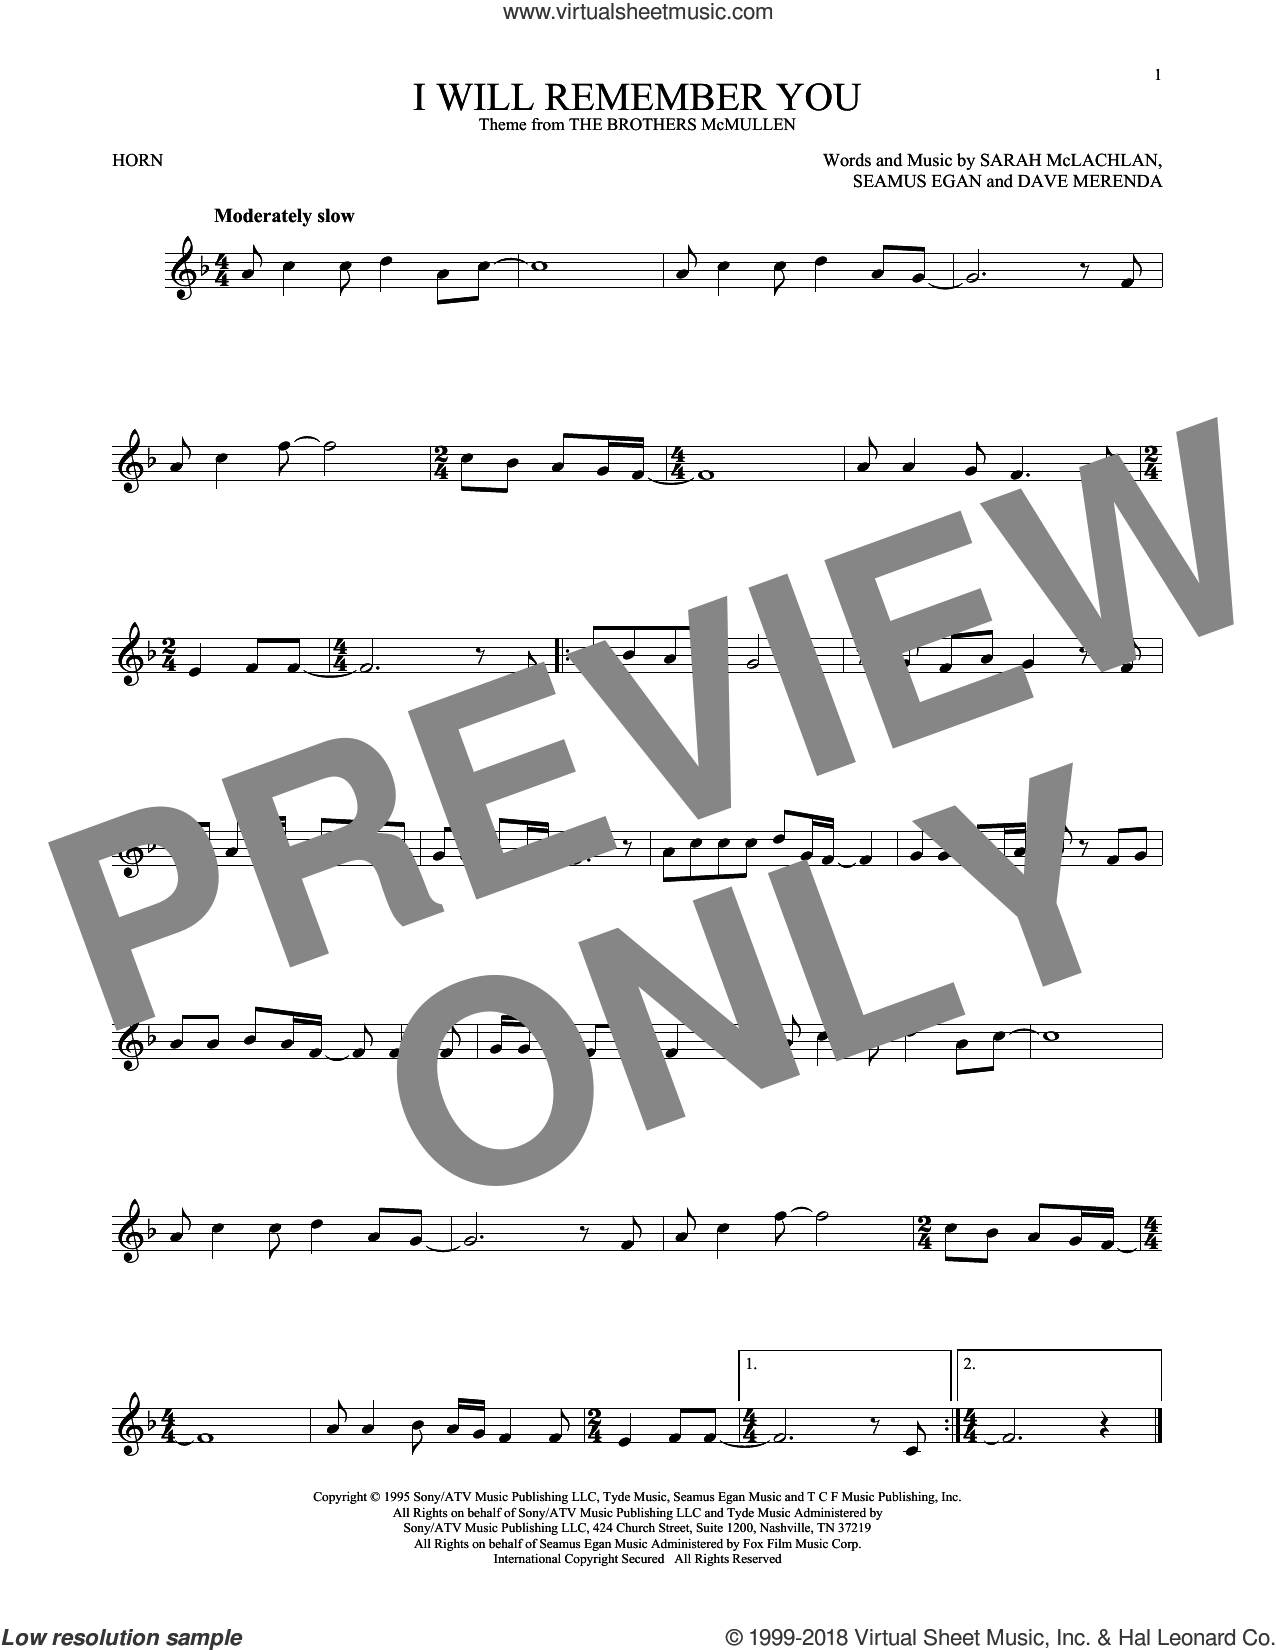 I Will Remember You sheet music for horn solo by Sarah McLachlan, Dave Merenda and Seamus Egan, intermediate skill level